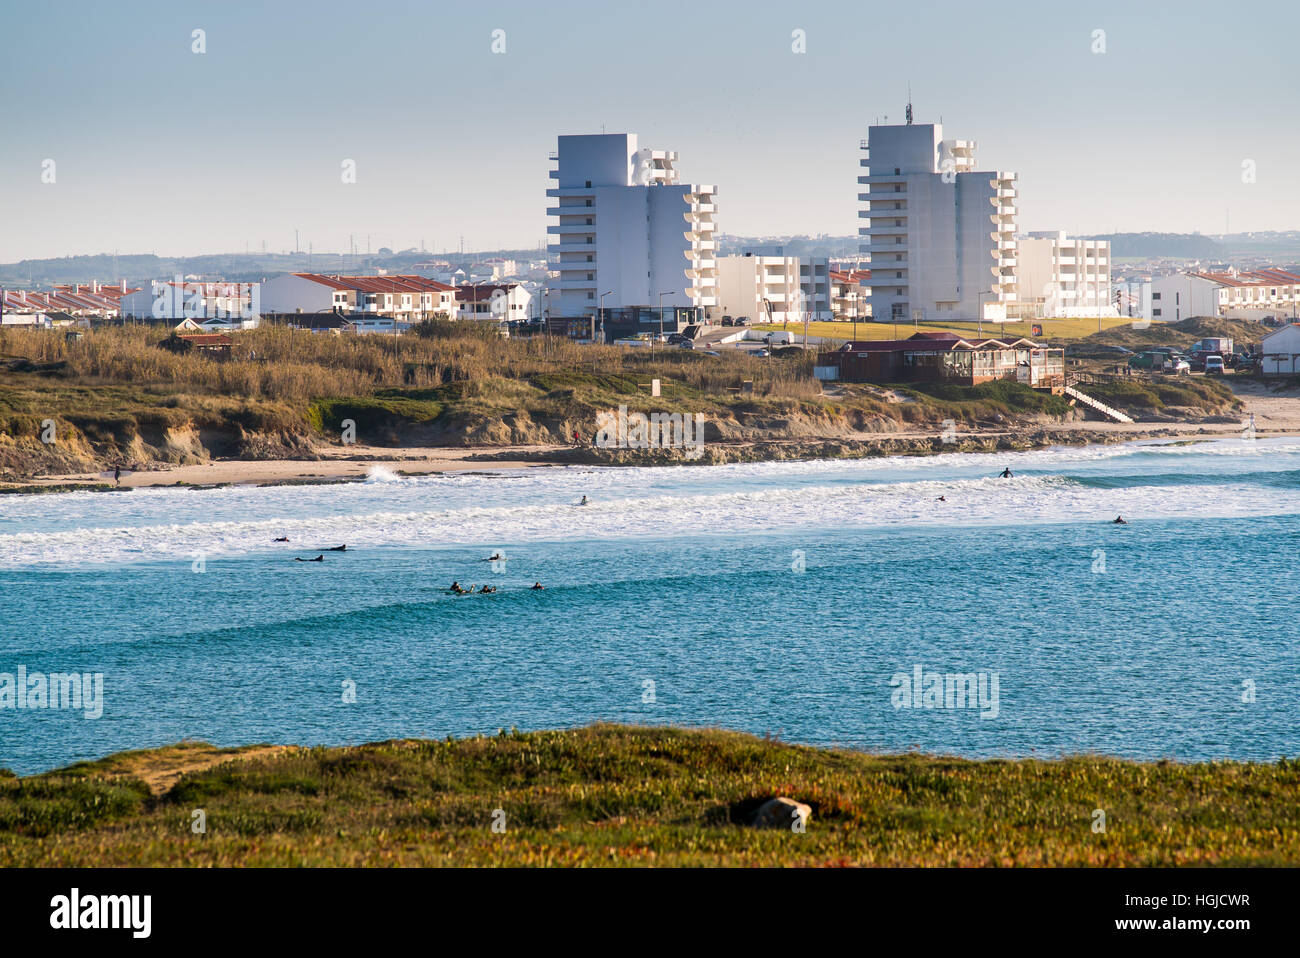 surfers make the best of the waves and sun in Peniche, Portugal - Stock Image